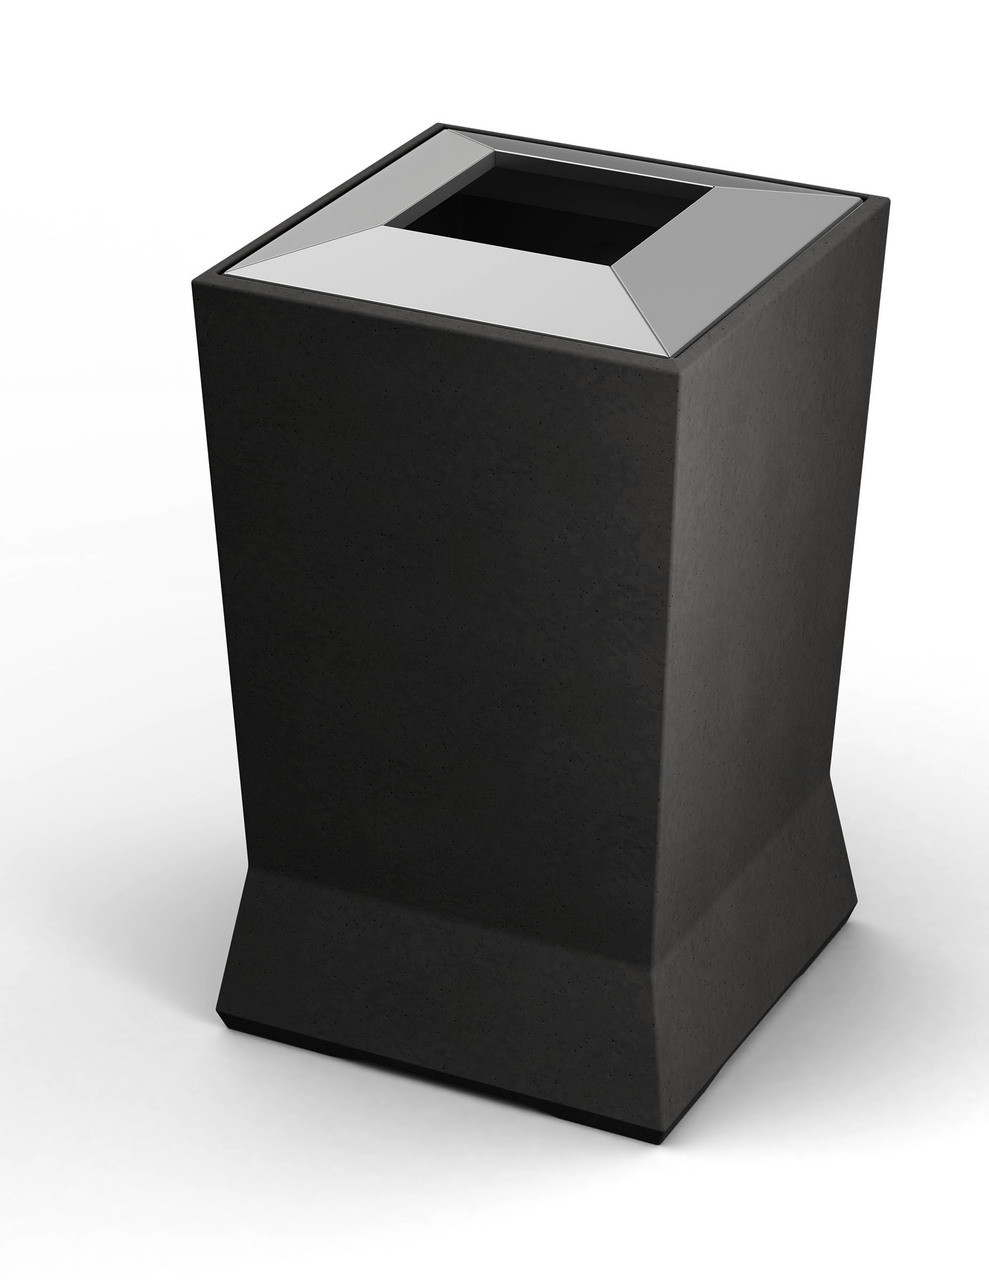 39 Gallon ModTec Plastic & Steel Designer Trash Can 724666 Gunmetal Satin